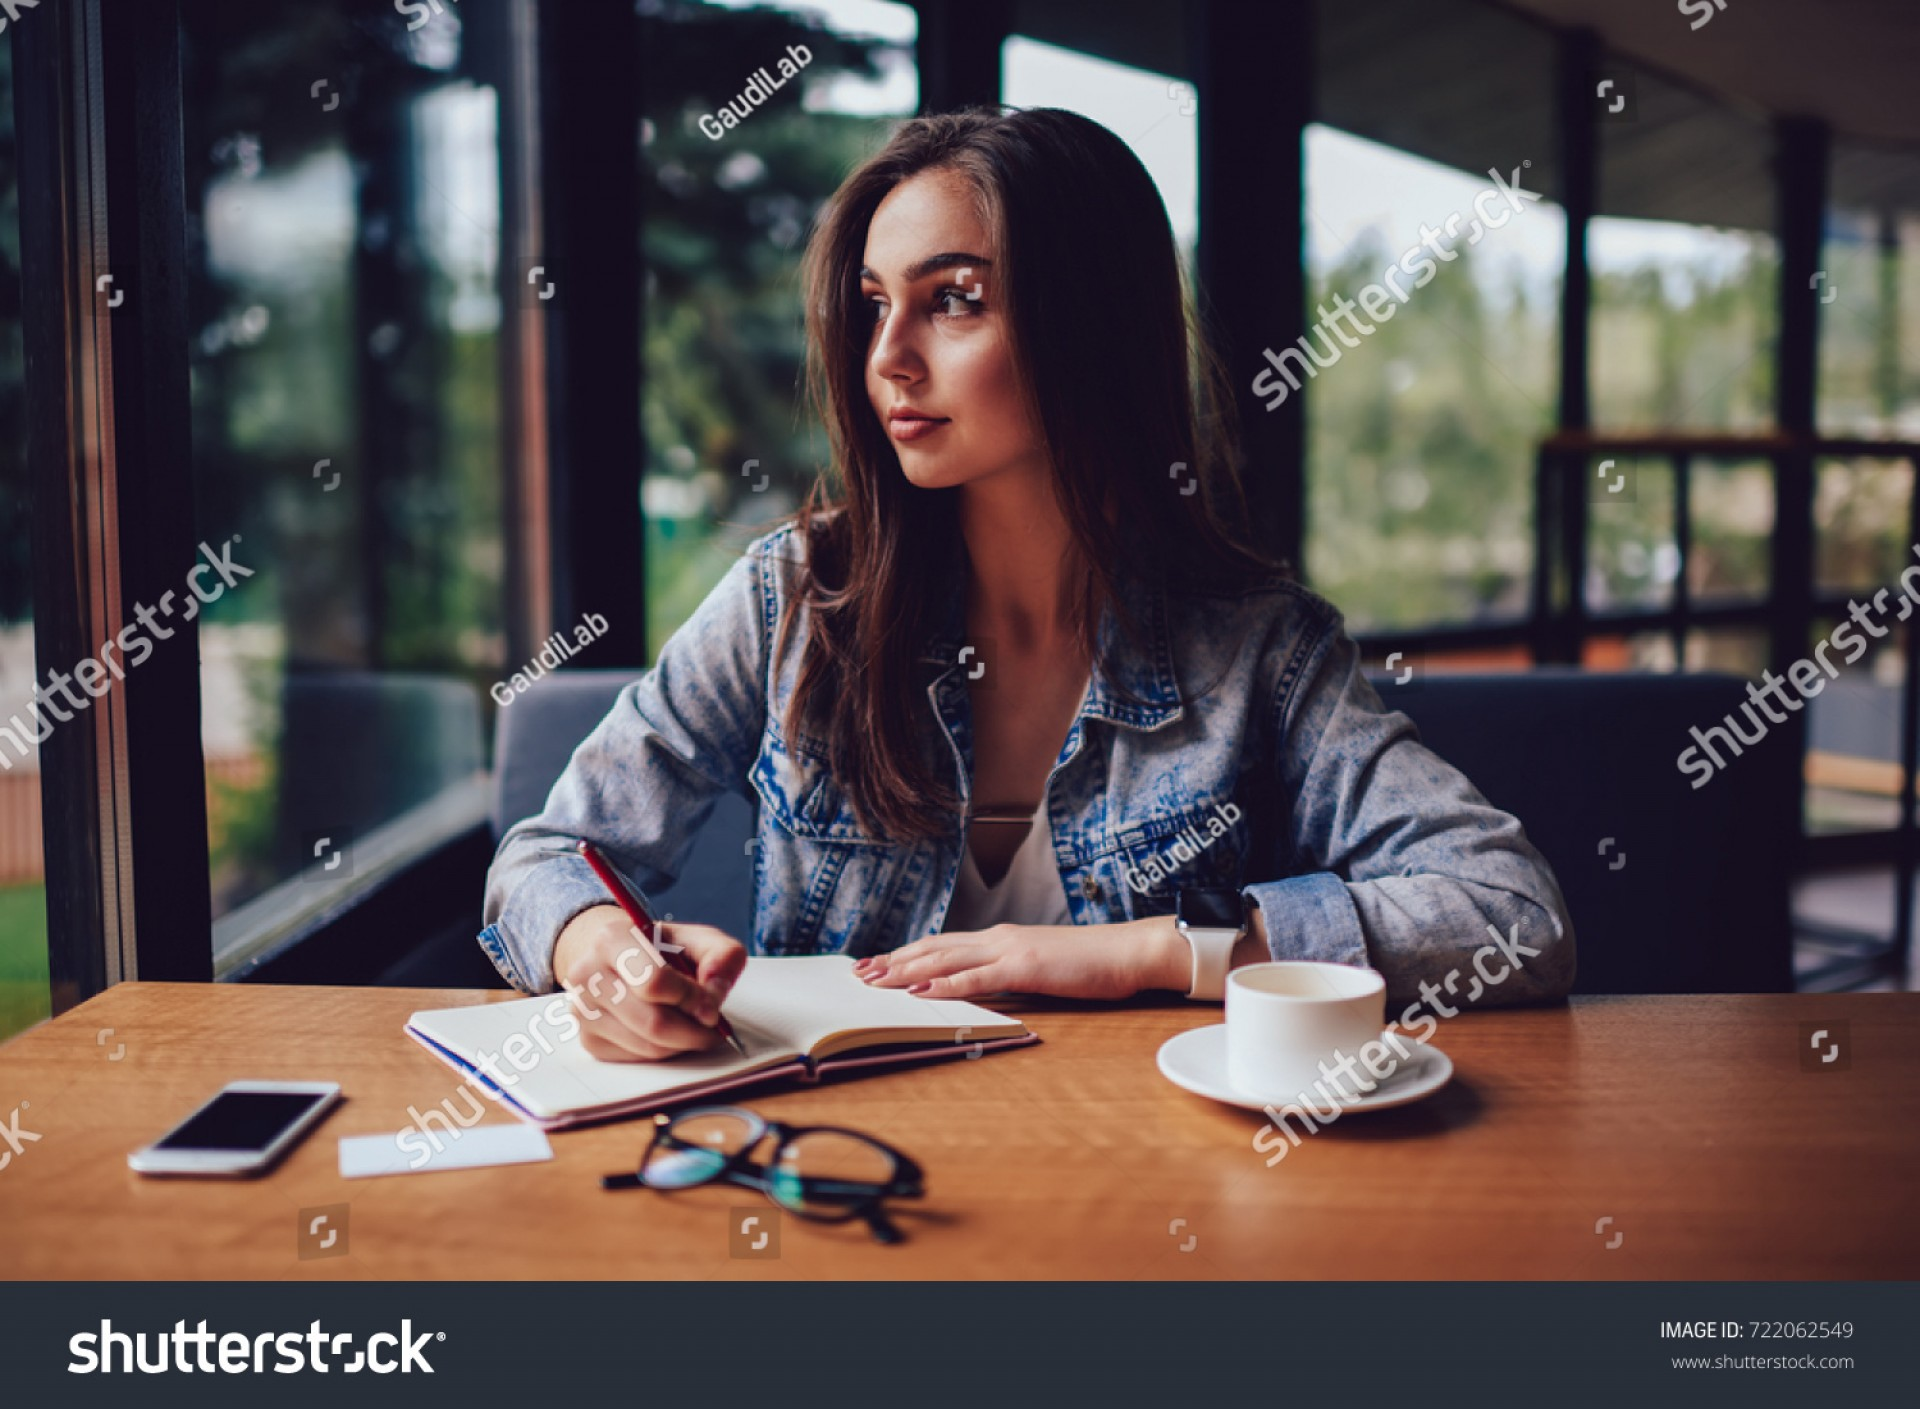 017 Essay Example Looking Out The Window Stock Photo Thoughtful Skilled Author Of And Thinking On Writing Interesting For Stunning My 1920